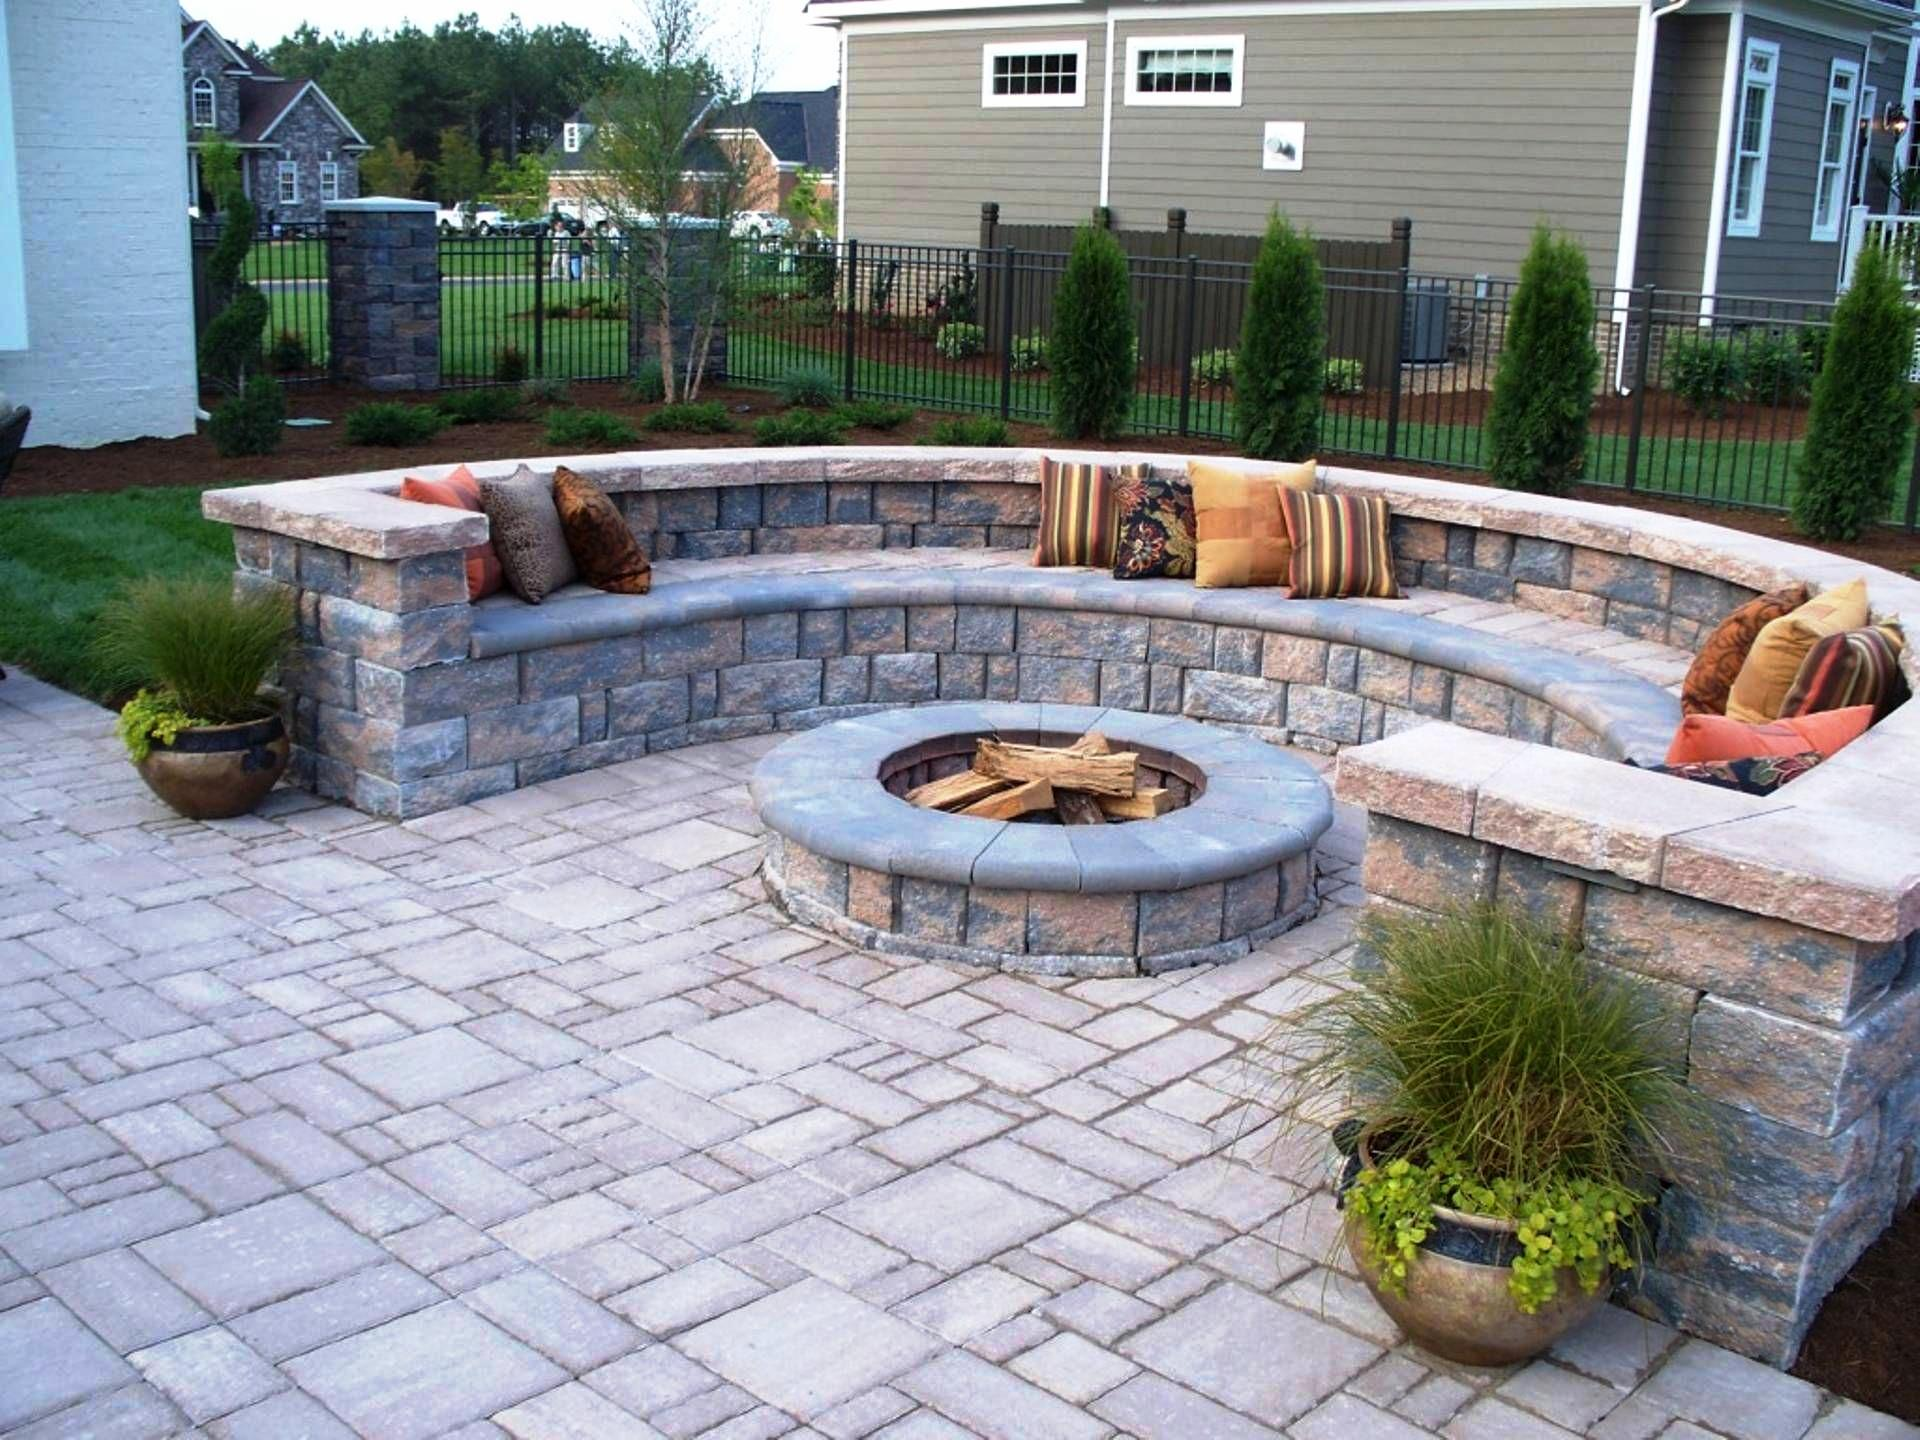 Paver Patio Ideas On A Budget — Schmidt Gallery Design on Stone Patio Ideas On A Budget id=44478